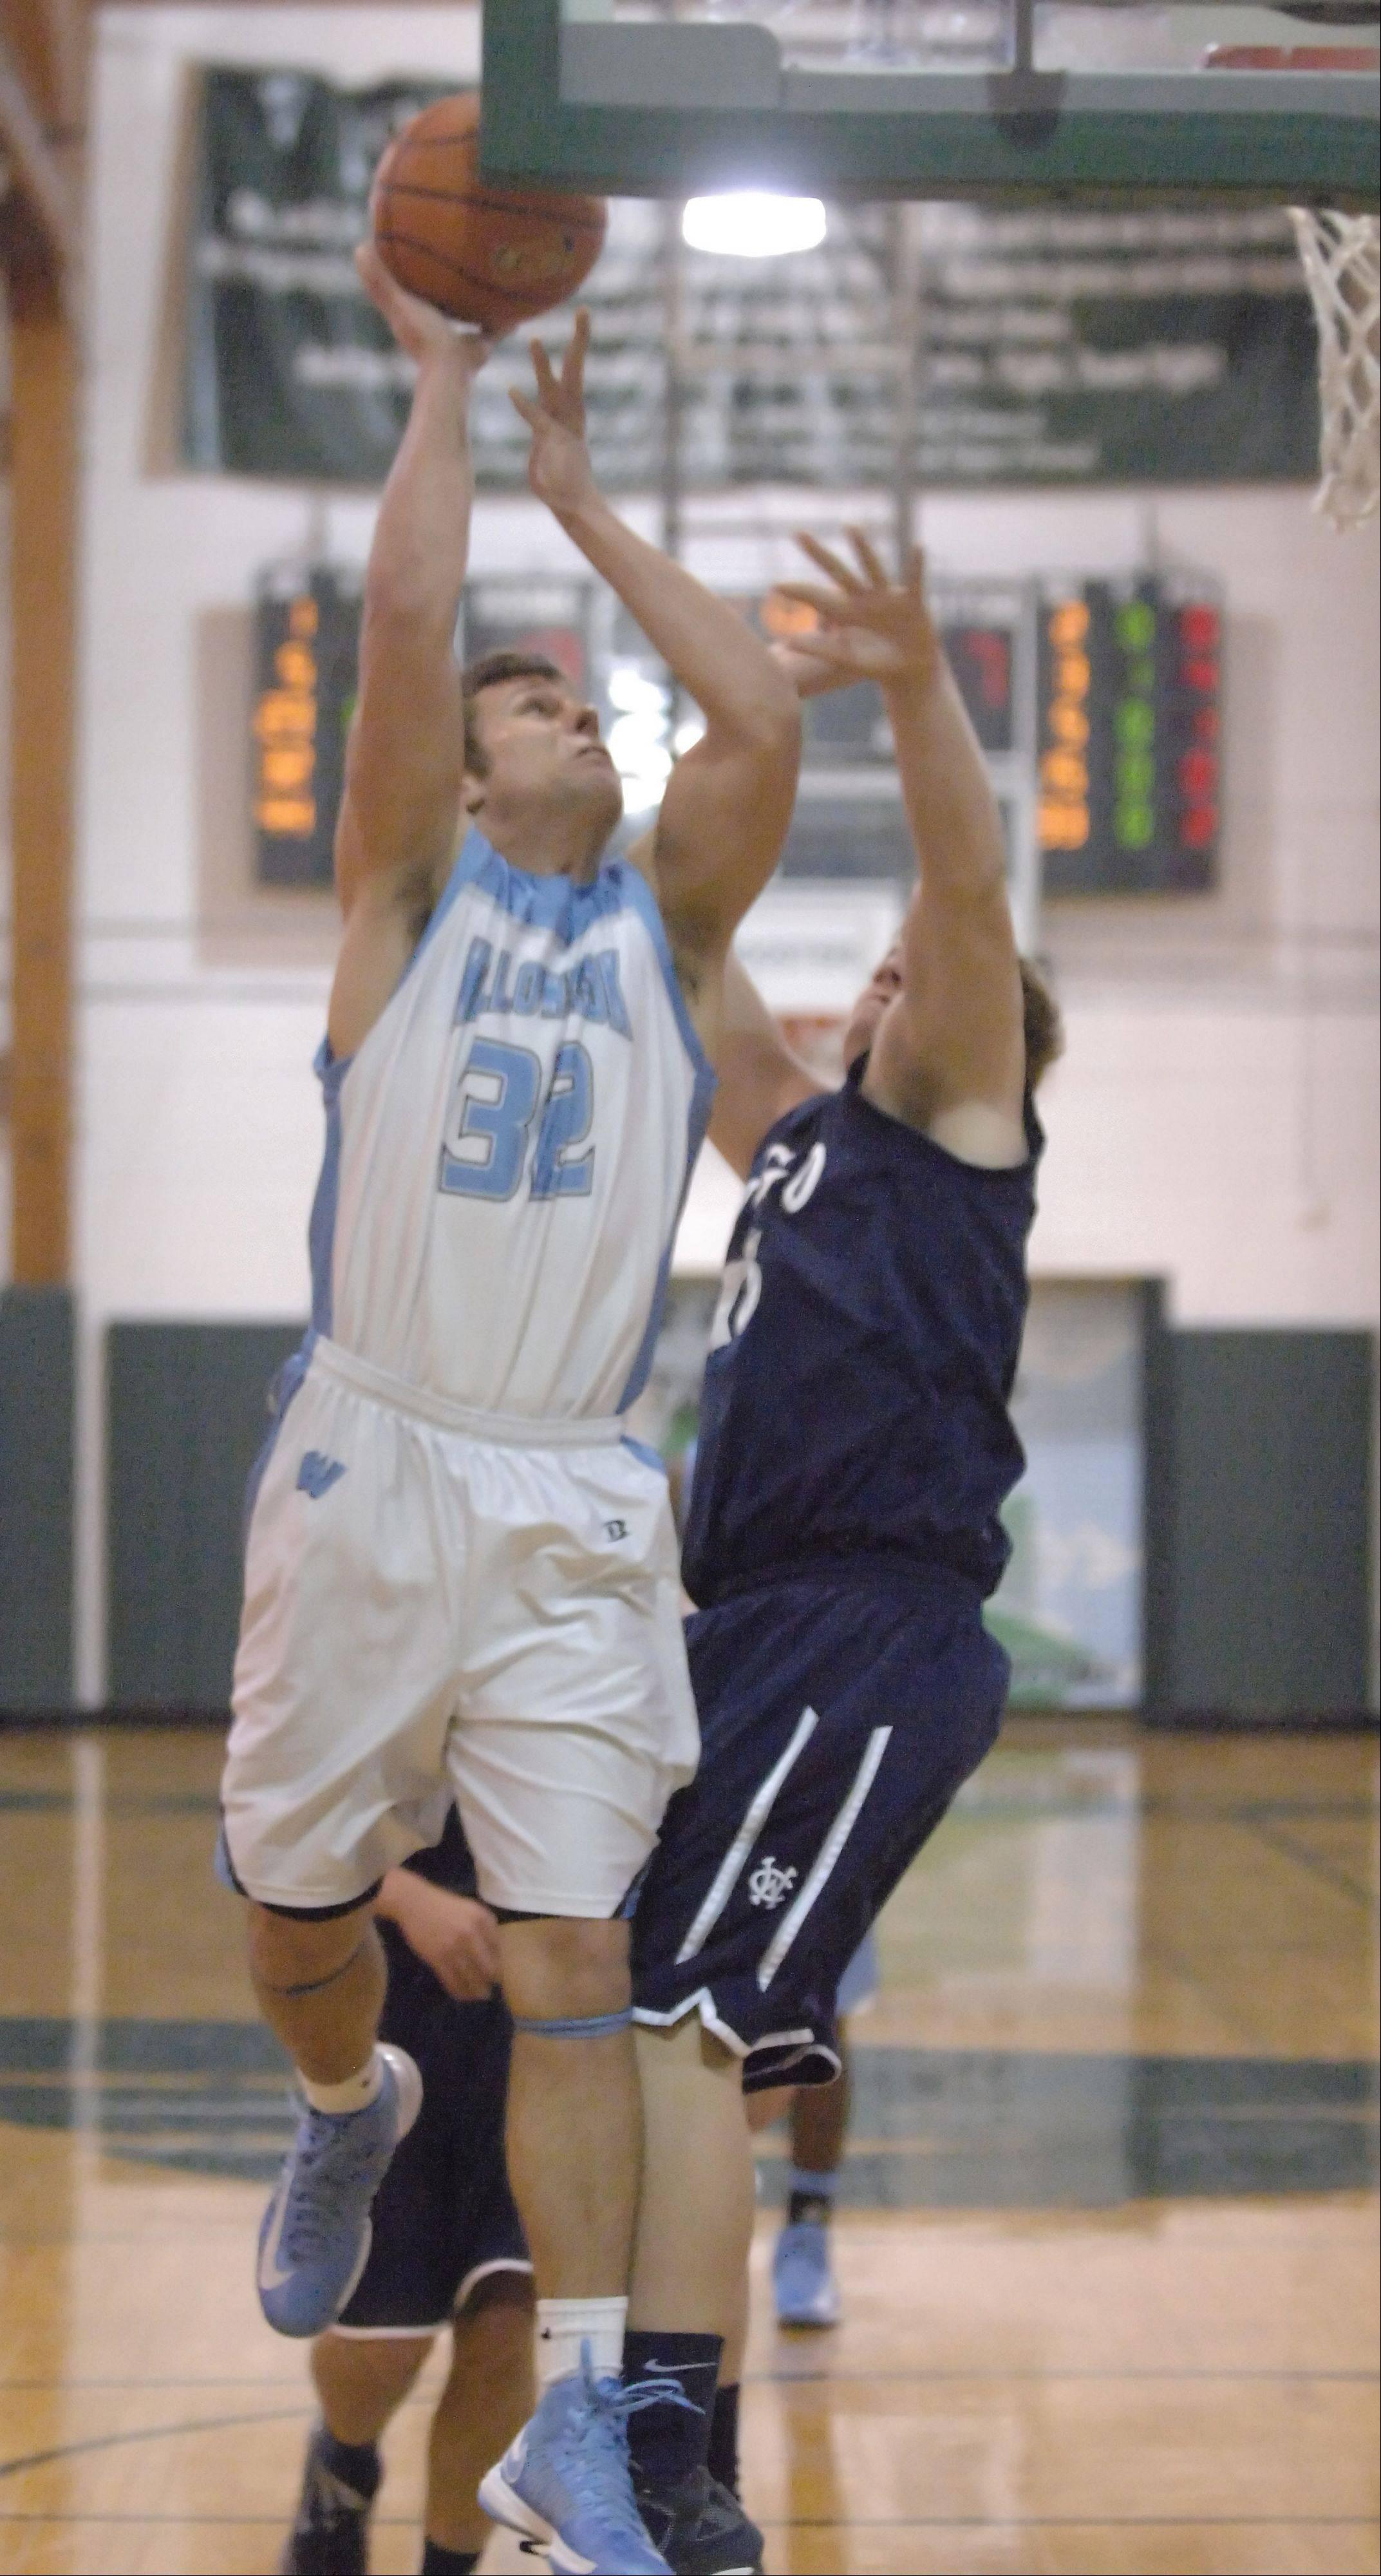 Nick Kilianek of Willowbrook brings the ball to the net during the West Chicago vs. Willowbrook boys basketball game at the Glenbard West Holiday Tournament Thursday.